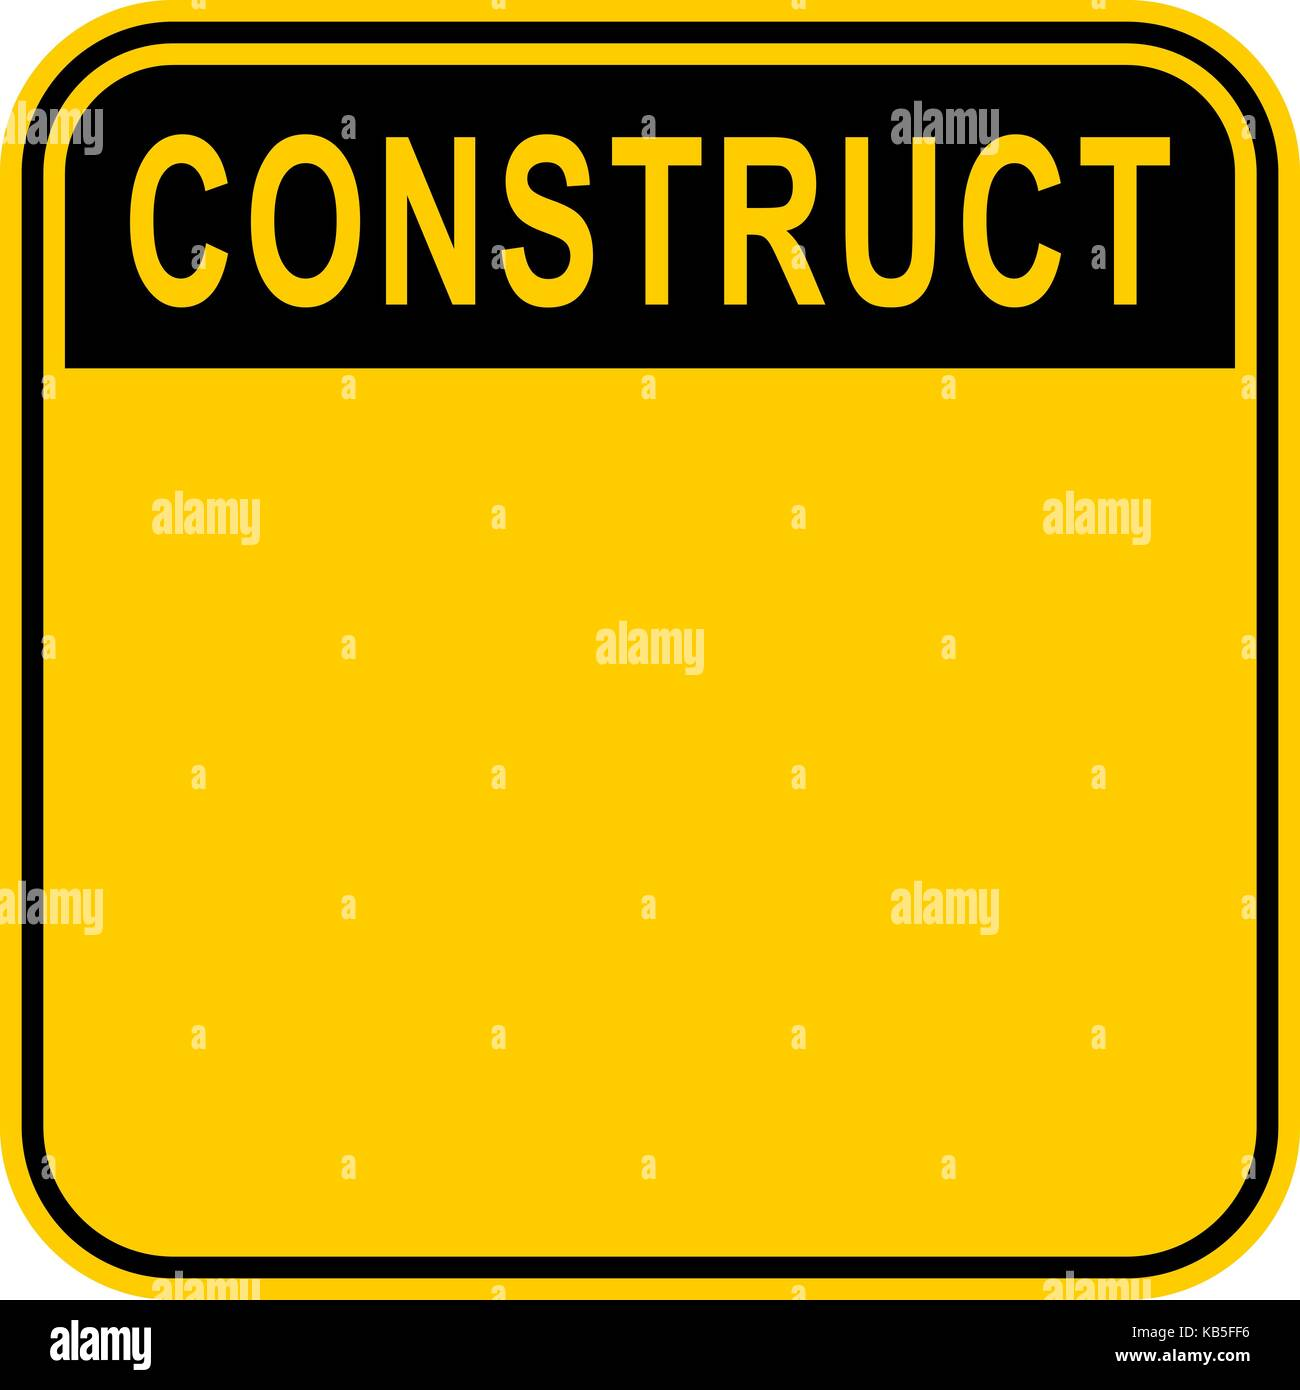 Use it in all your designs. Empty safety sign board with word Construct. Sticker square-shaped painted in black - Stock Image